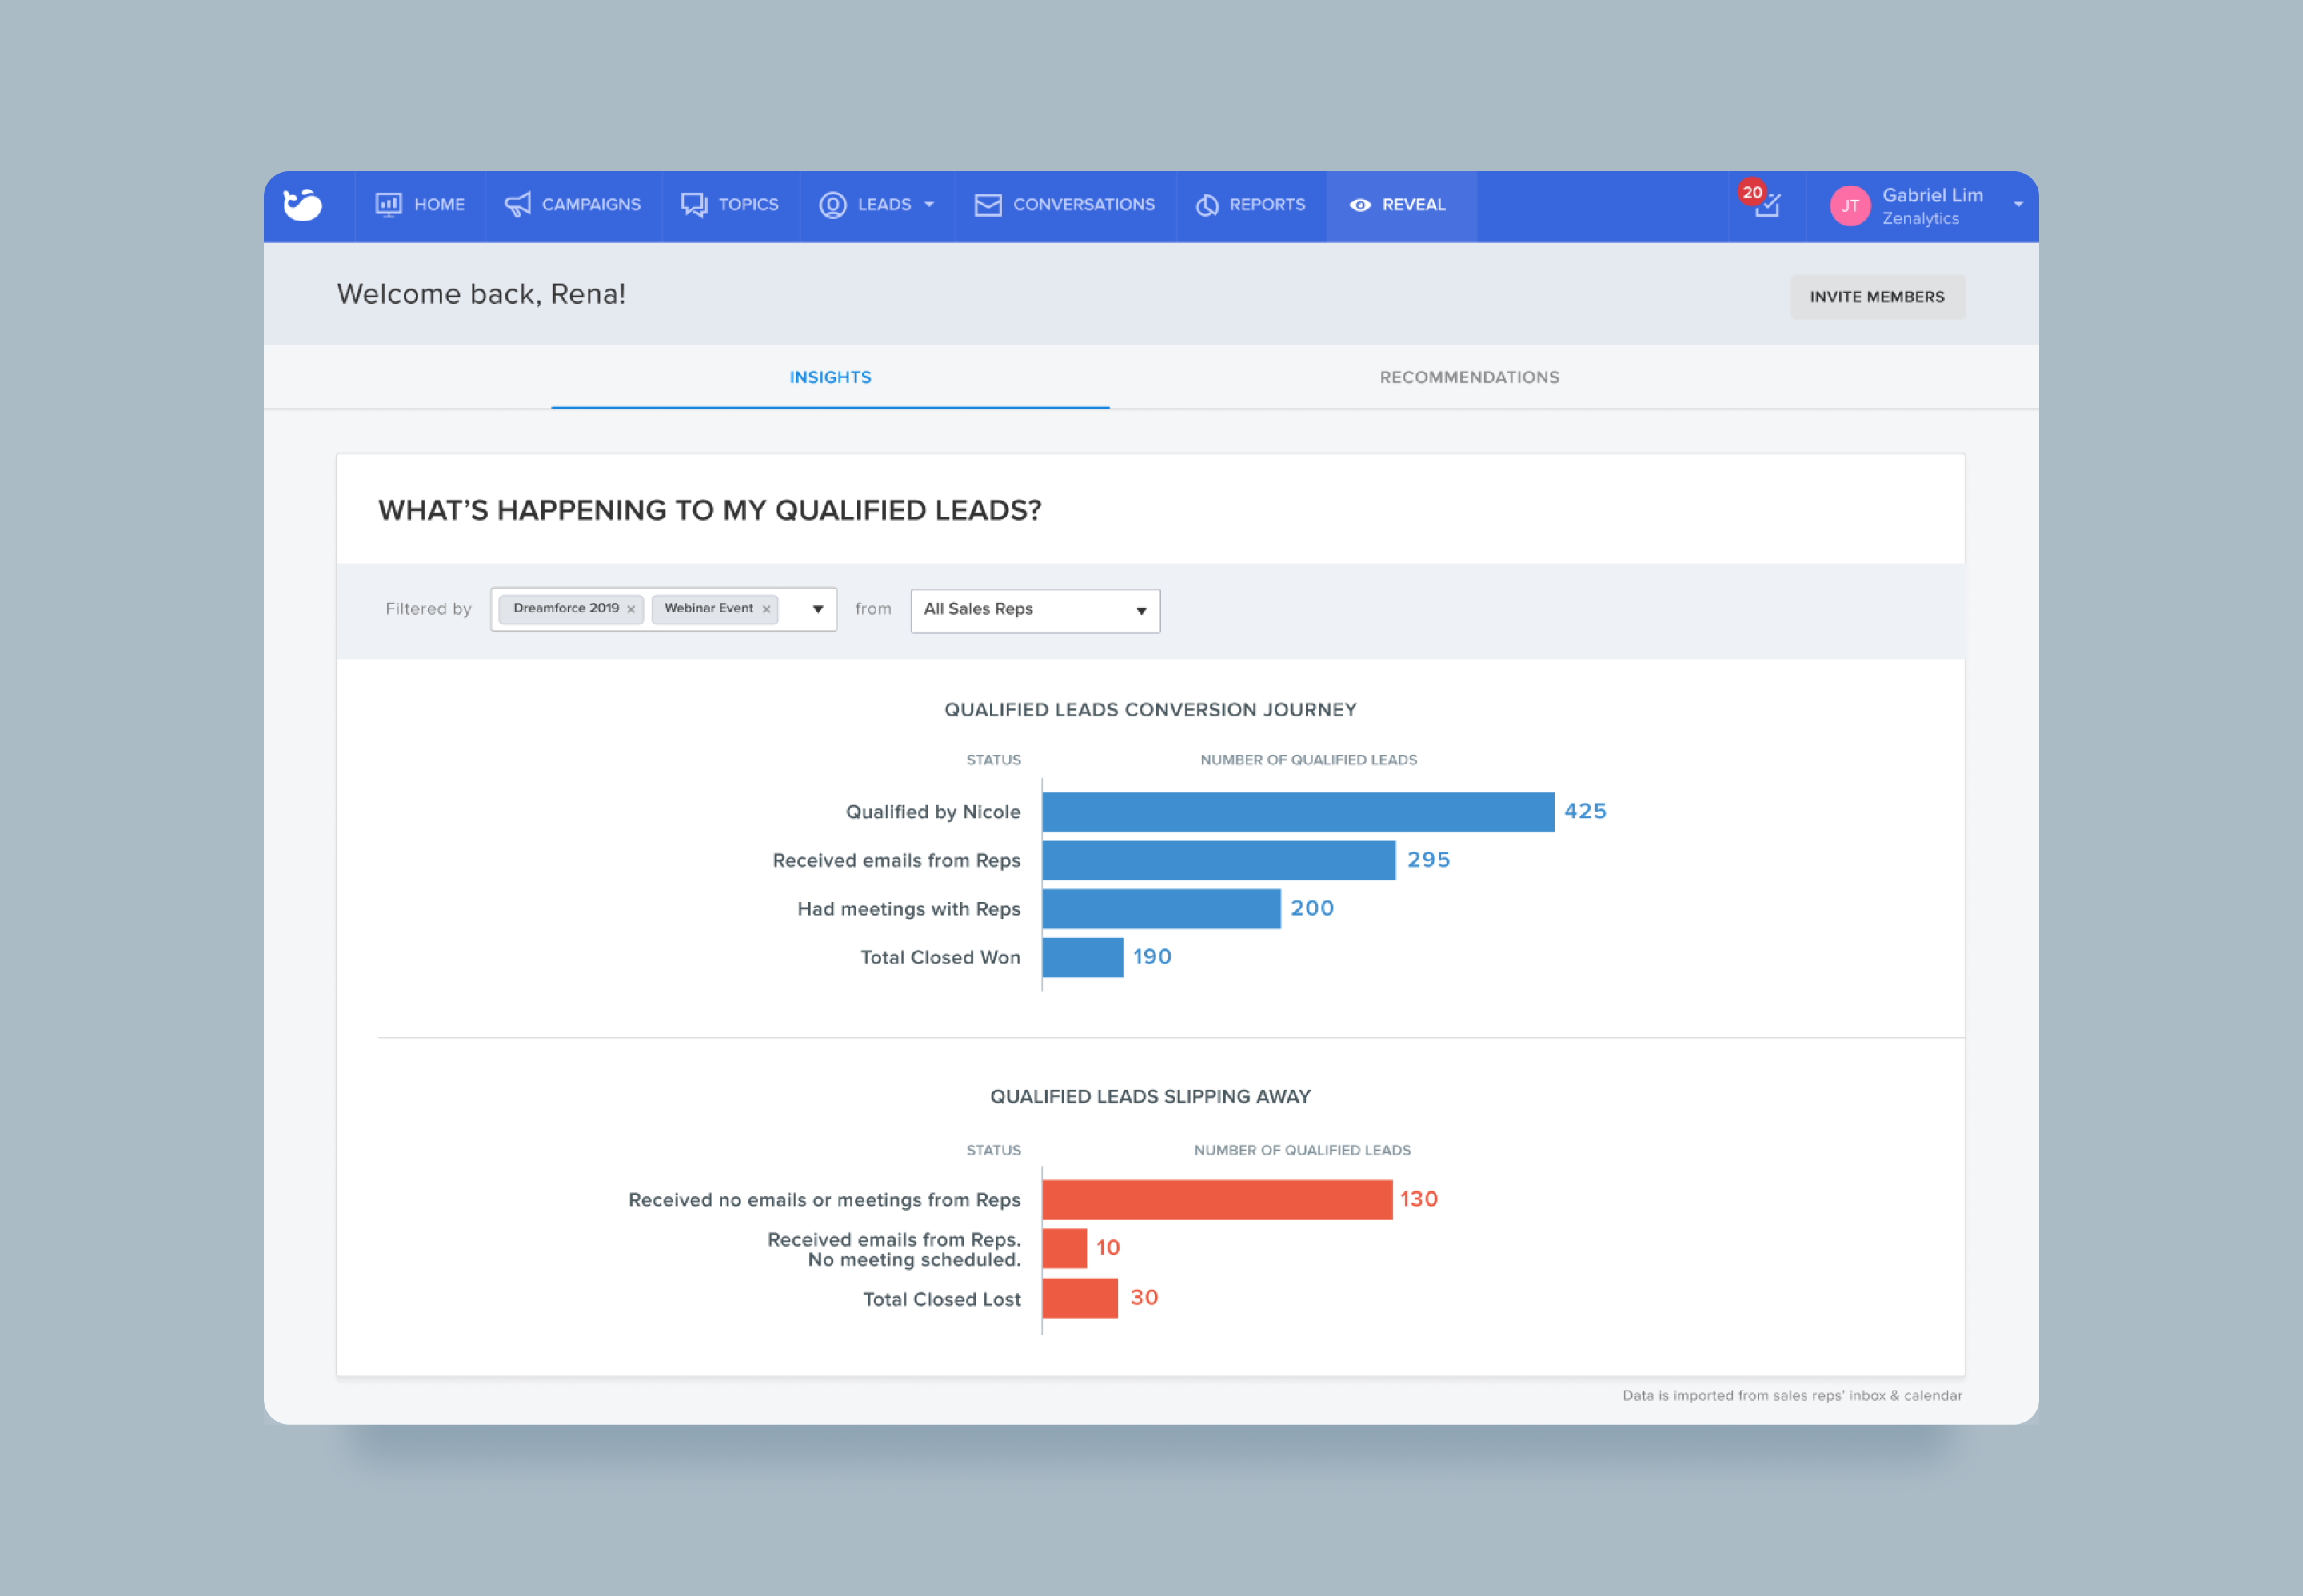 Reveal gives users insights into qualified lead outcomes